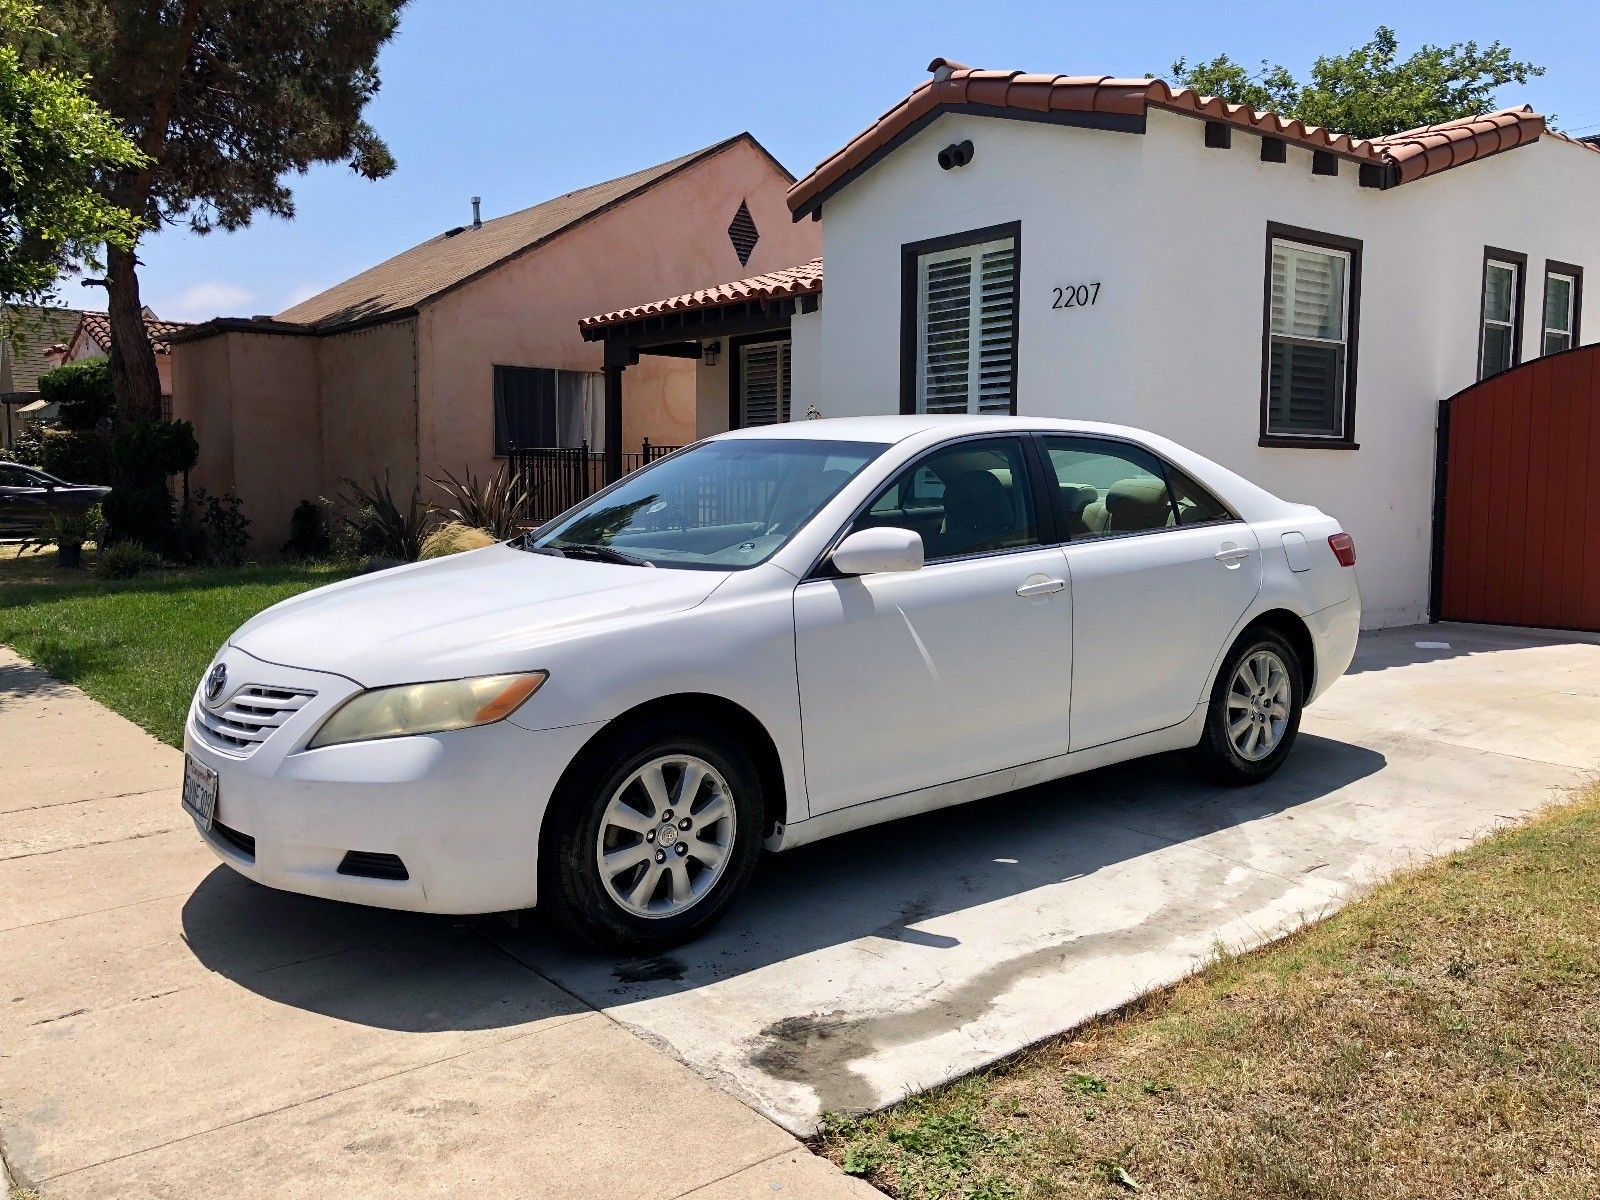 Awesome 2007 Toyota Camry Le 131 000 Miles V6 Engine 2018 2019